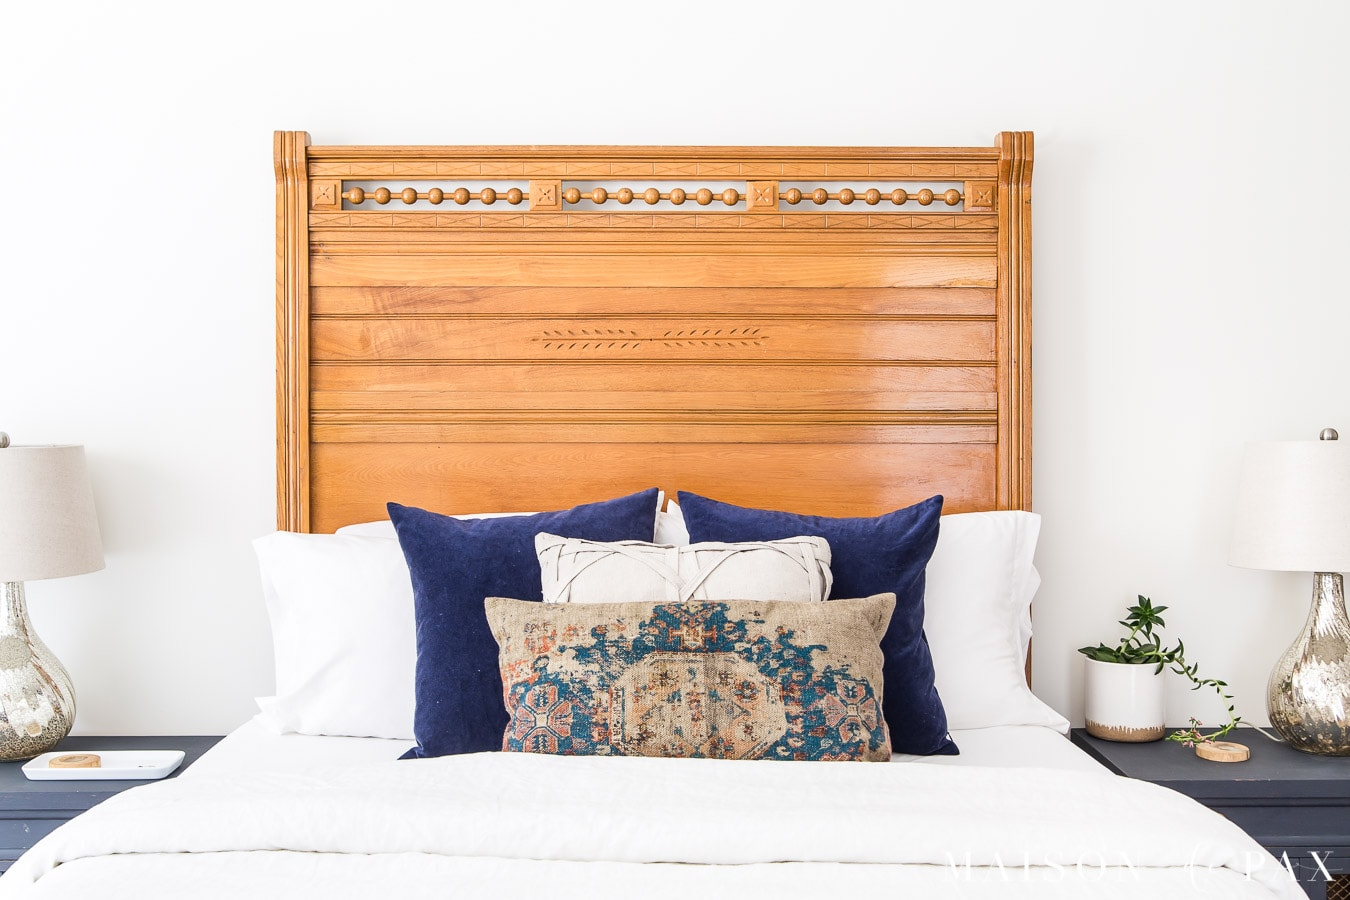 american antique wood headboard with crisp white linen bedding and velvet pillows | Maison de Pax